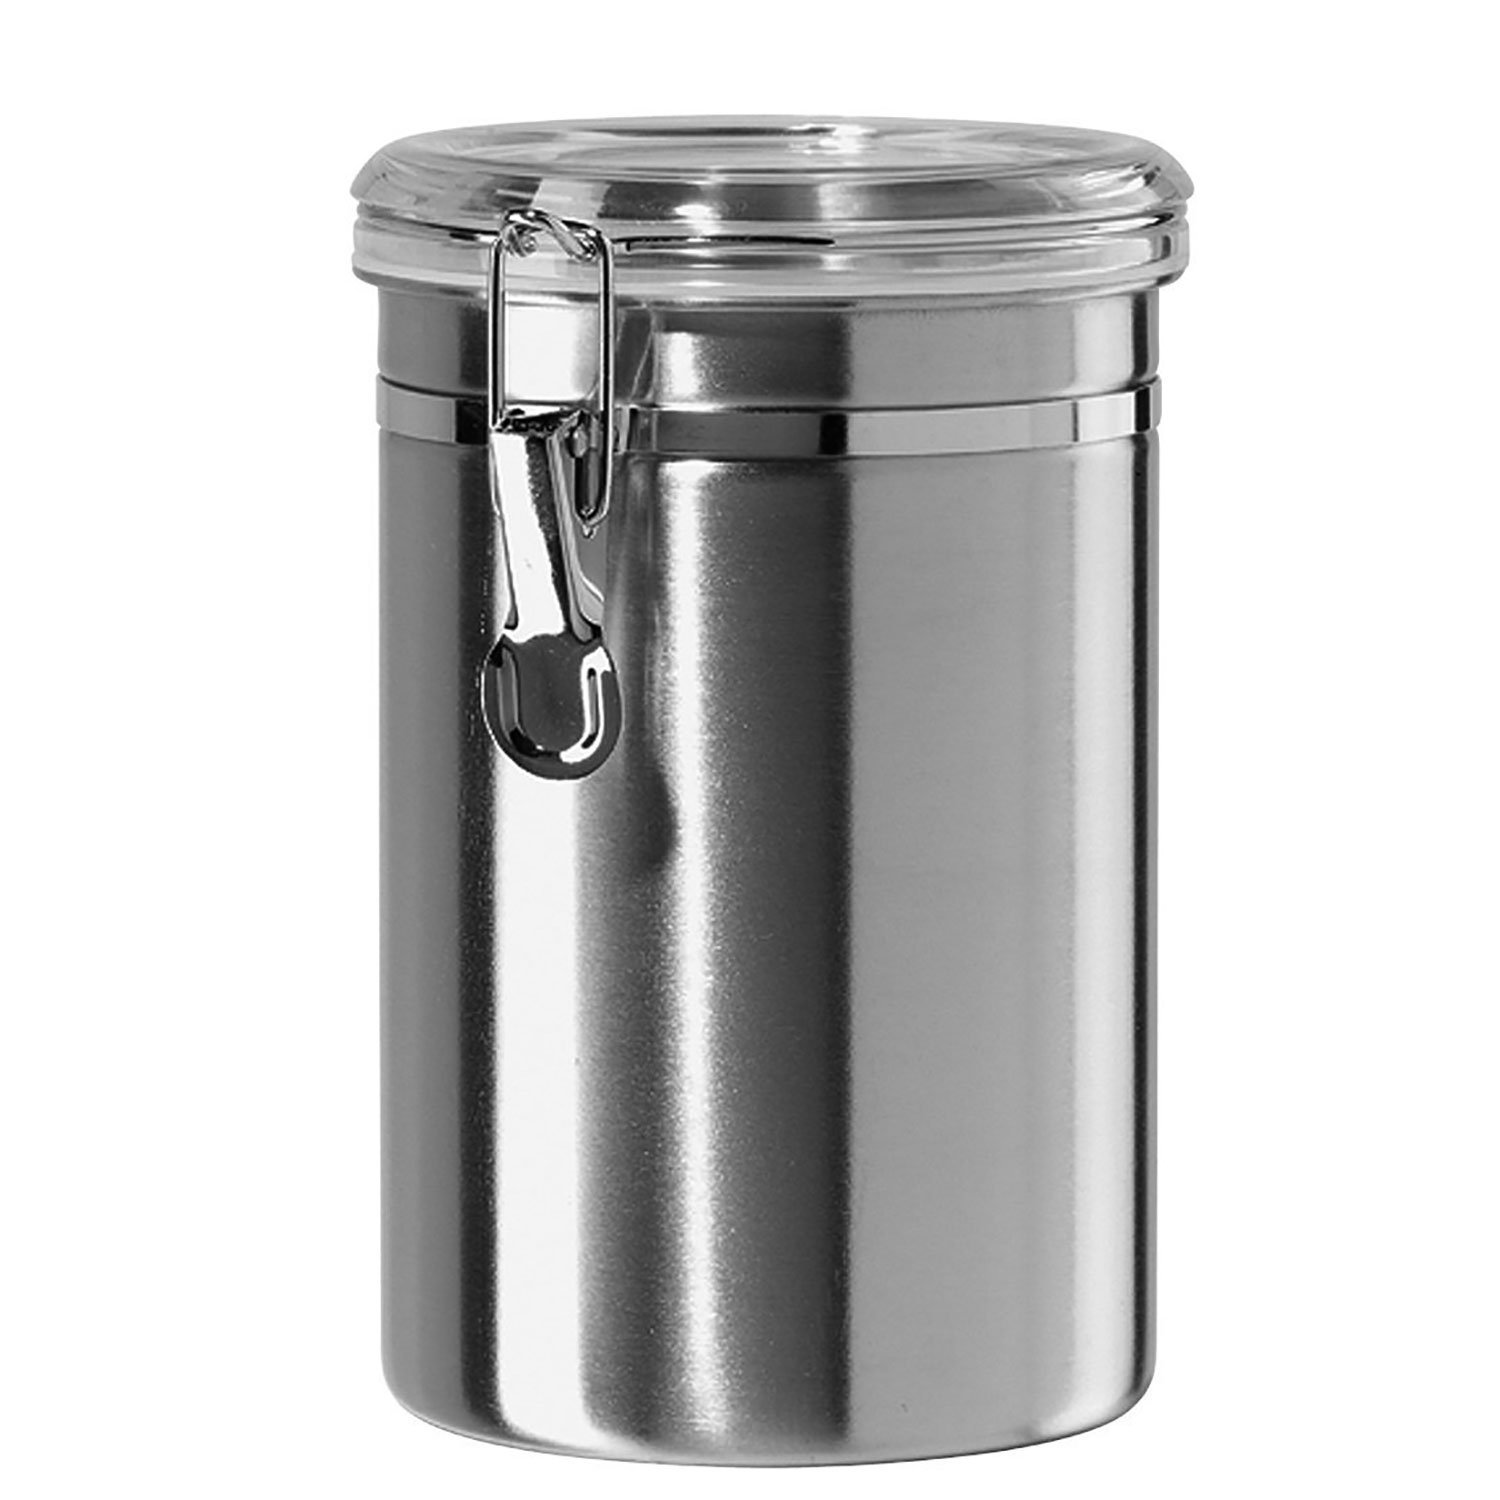 Canister Set Stainless Steel - Beautiful Canisters for Kitchen, Medium 64 fluid oz, with Airtight Lids, Food Storage Container, Tea Coffee Sugar Flour Canisters by SilverOnyx - Medium 64oz - 1 Piece